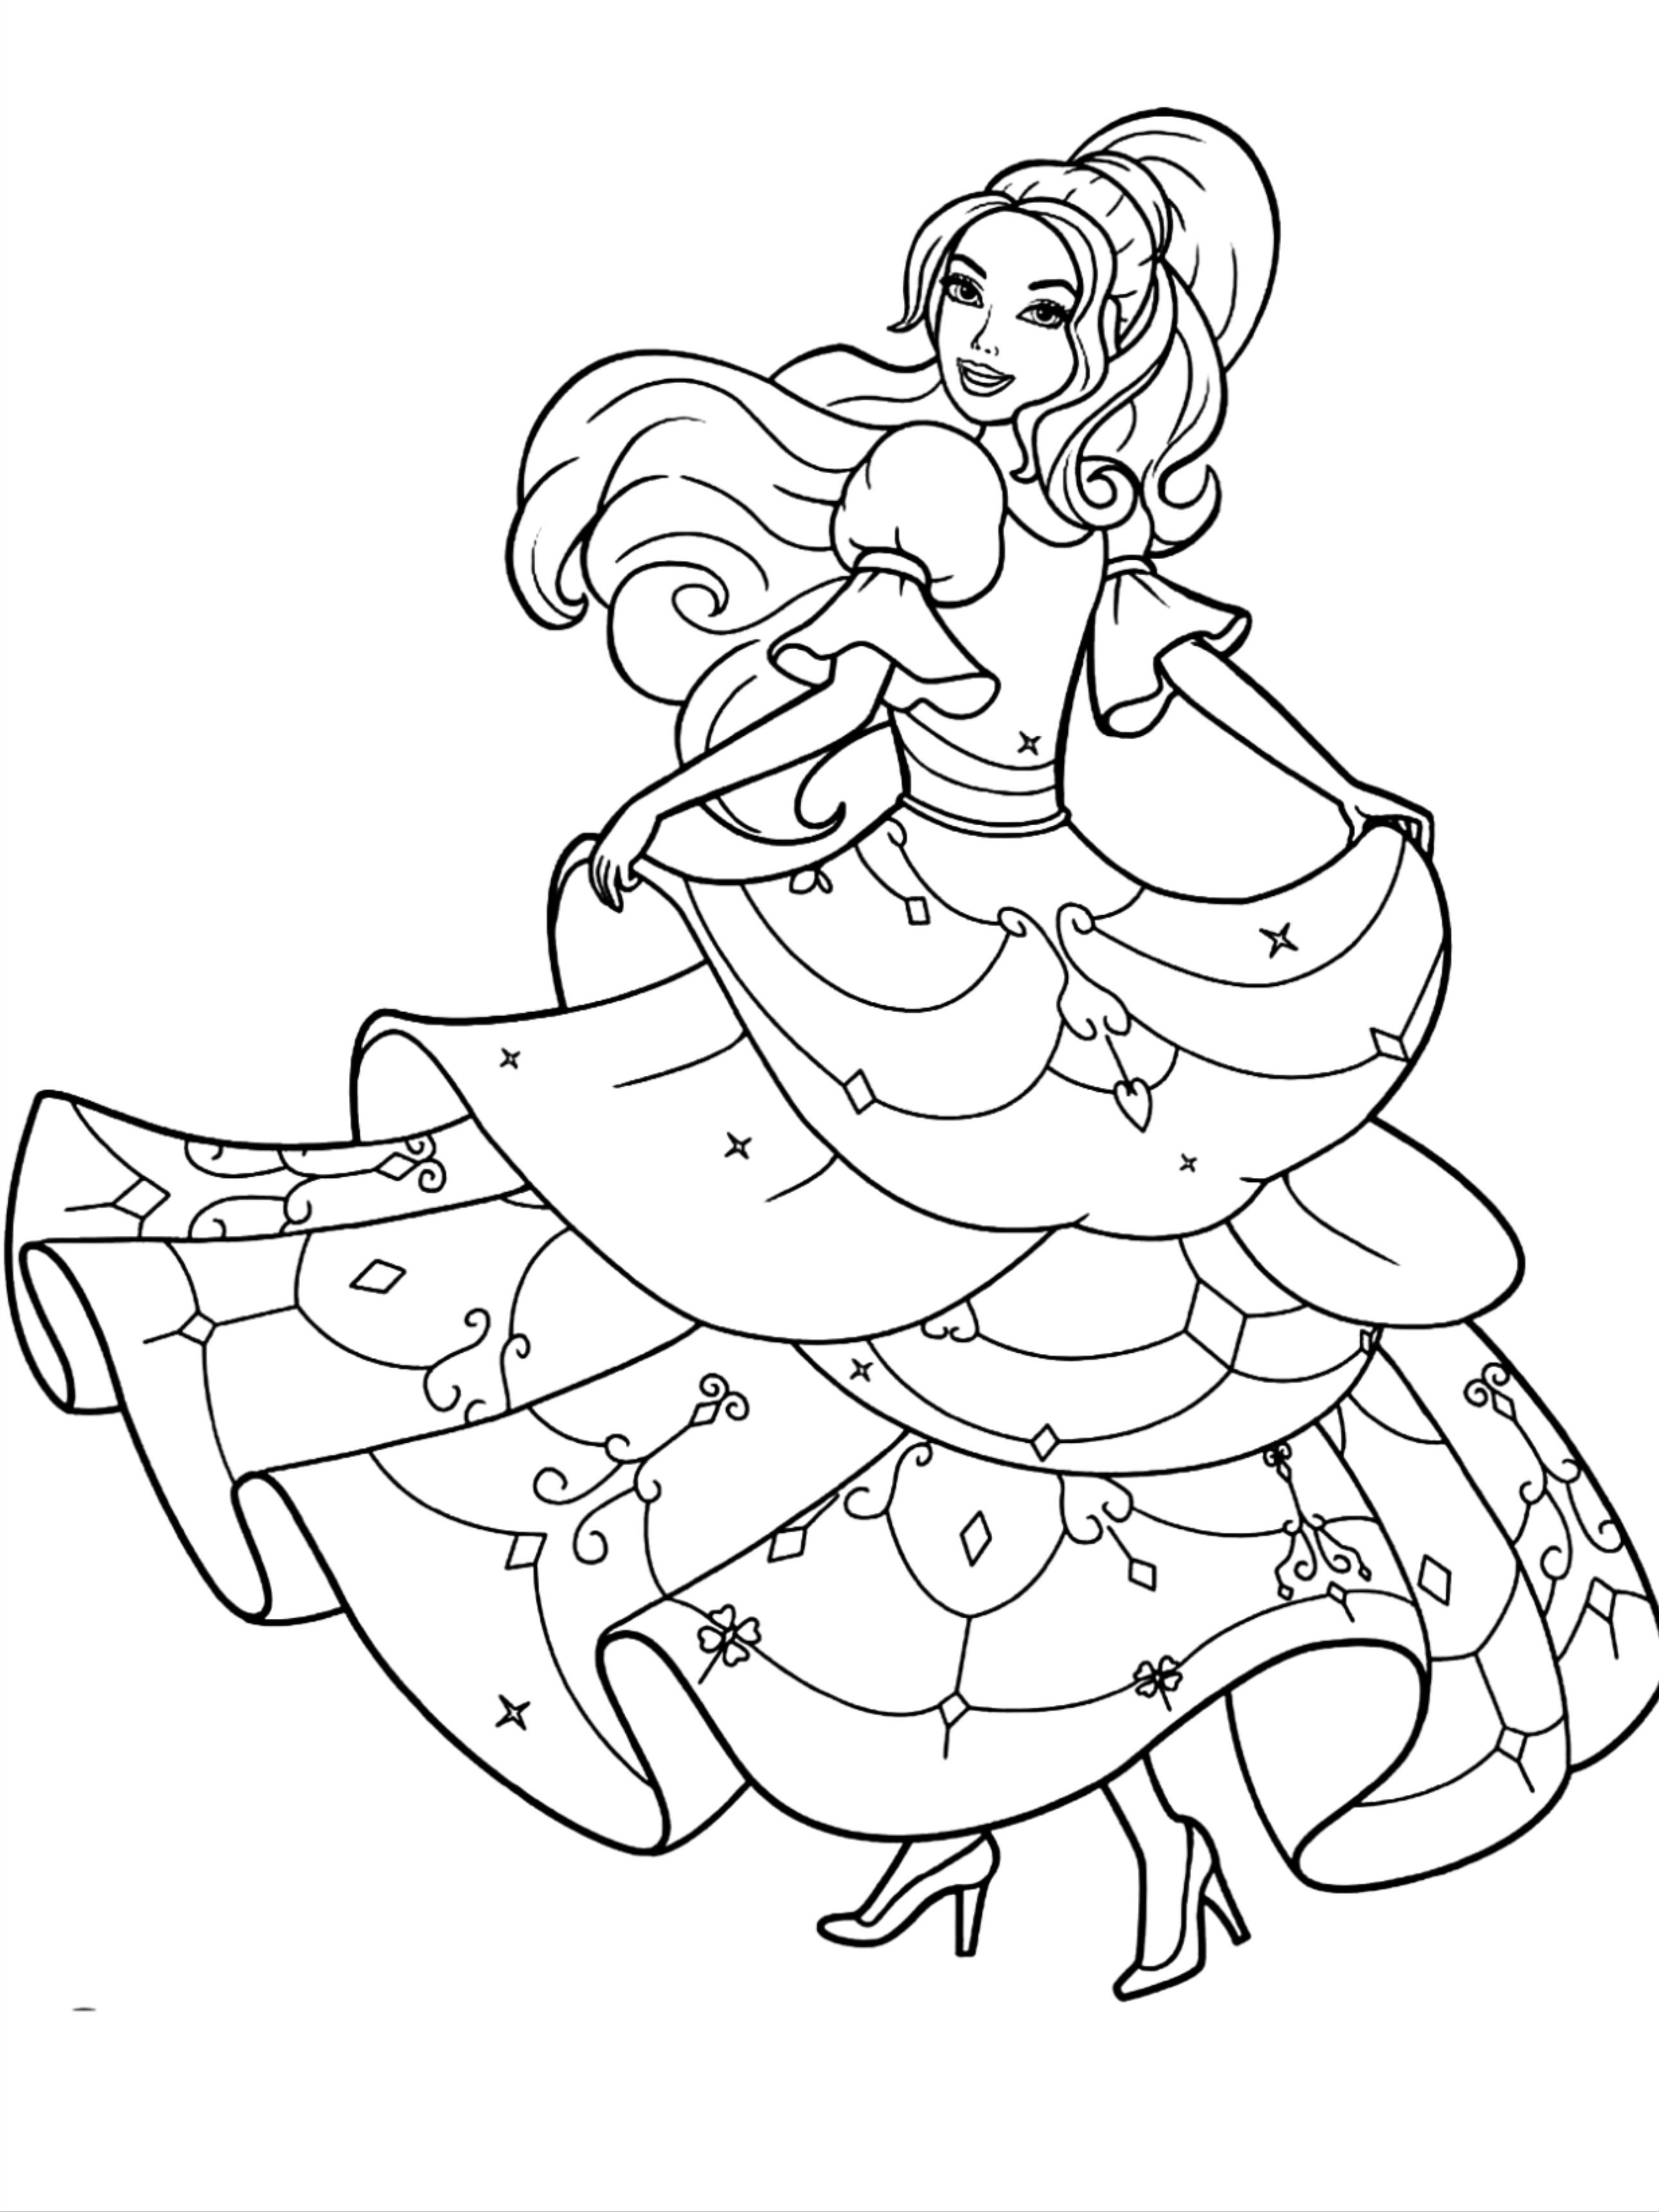 Barbie Princess Coloring Pages For Kids Barbie Coloring Pages Barbie Coloring Princess Coloring Pages